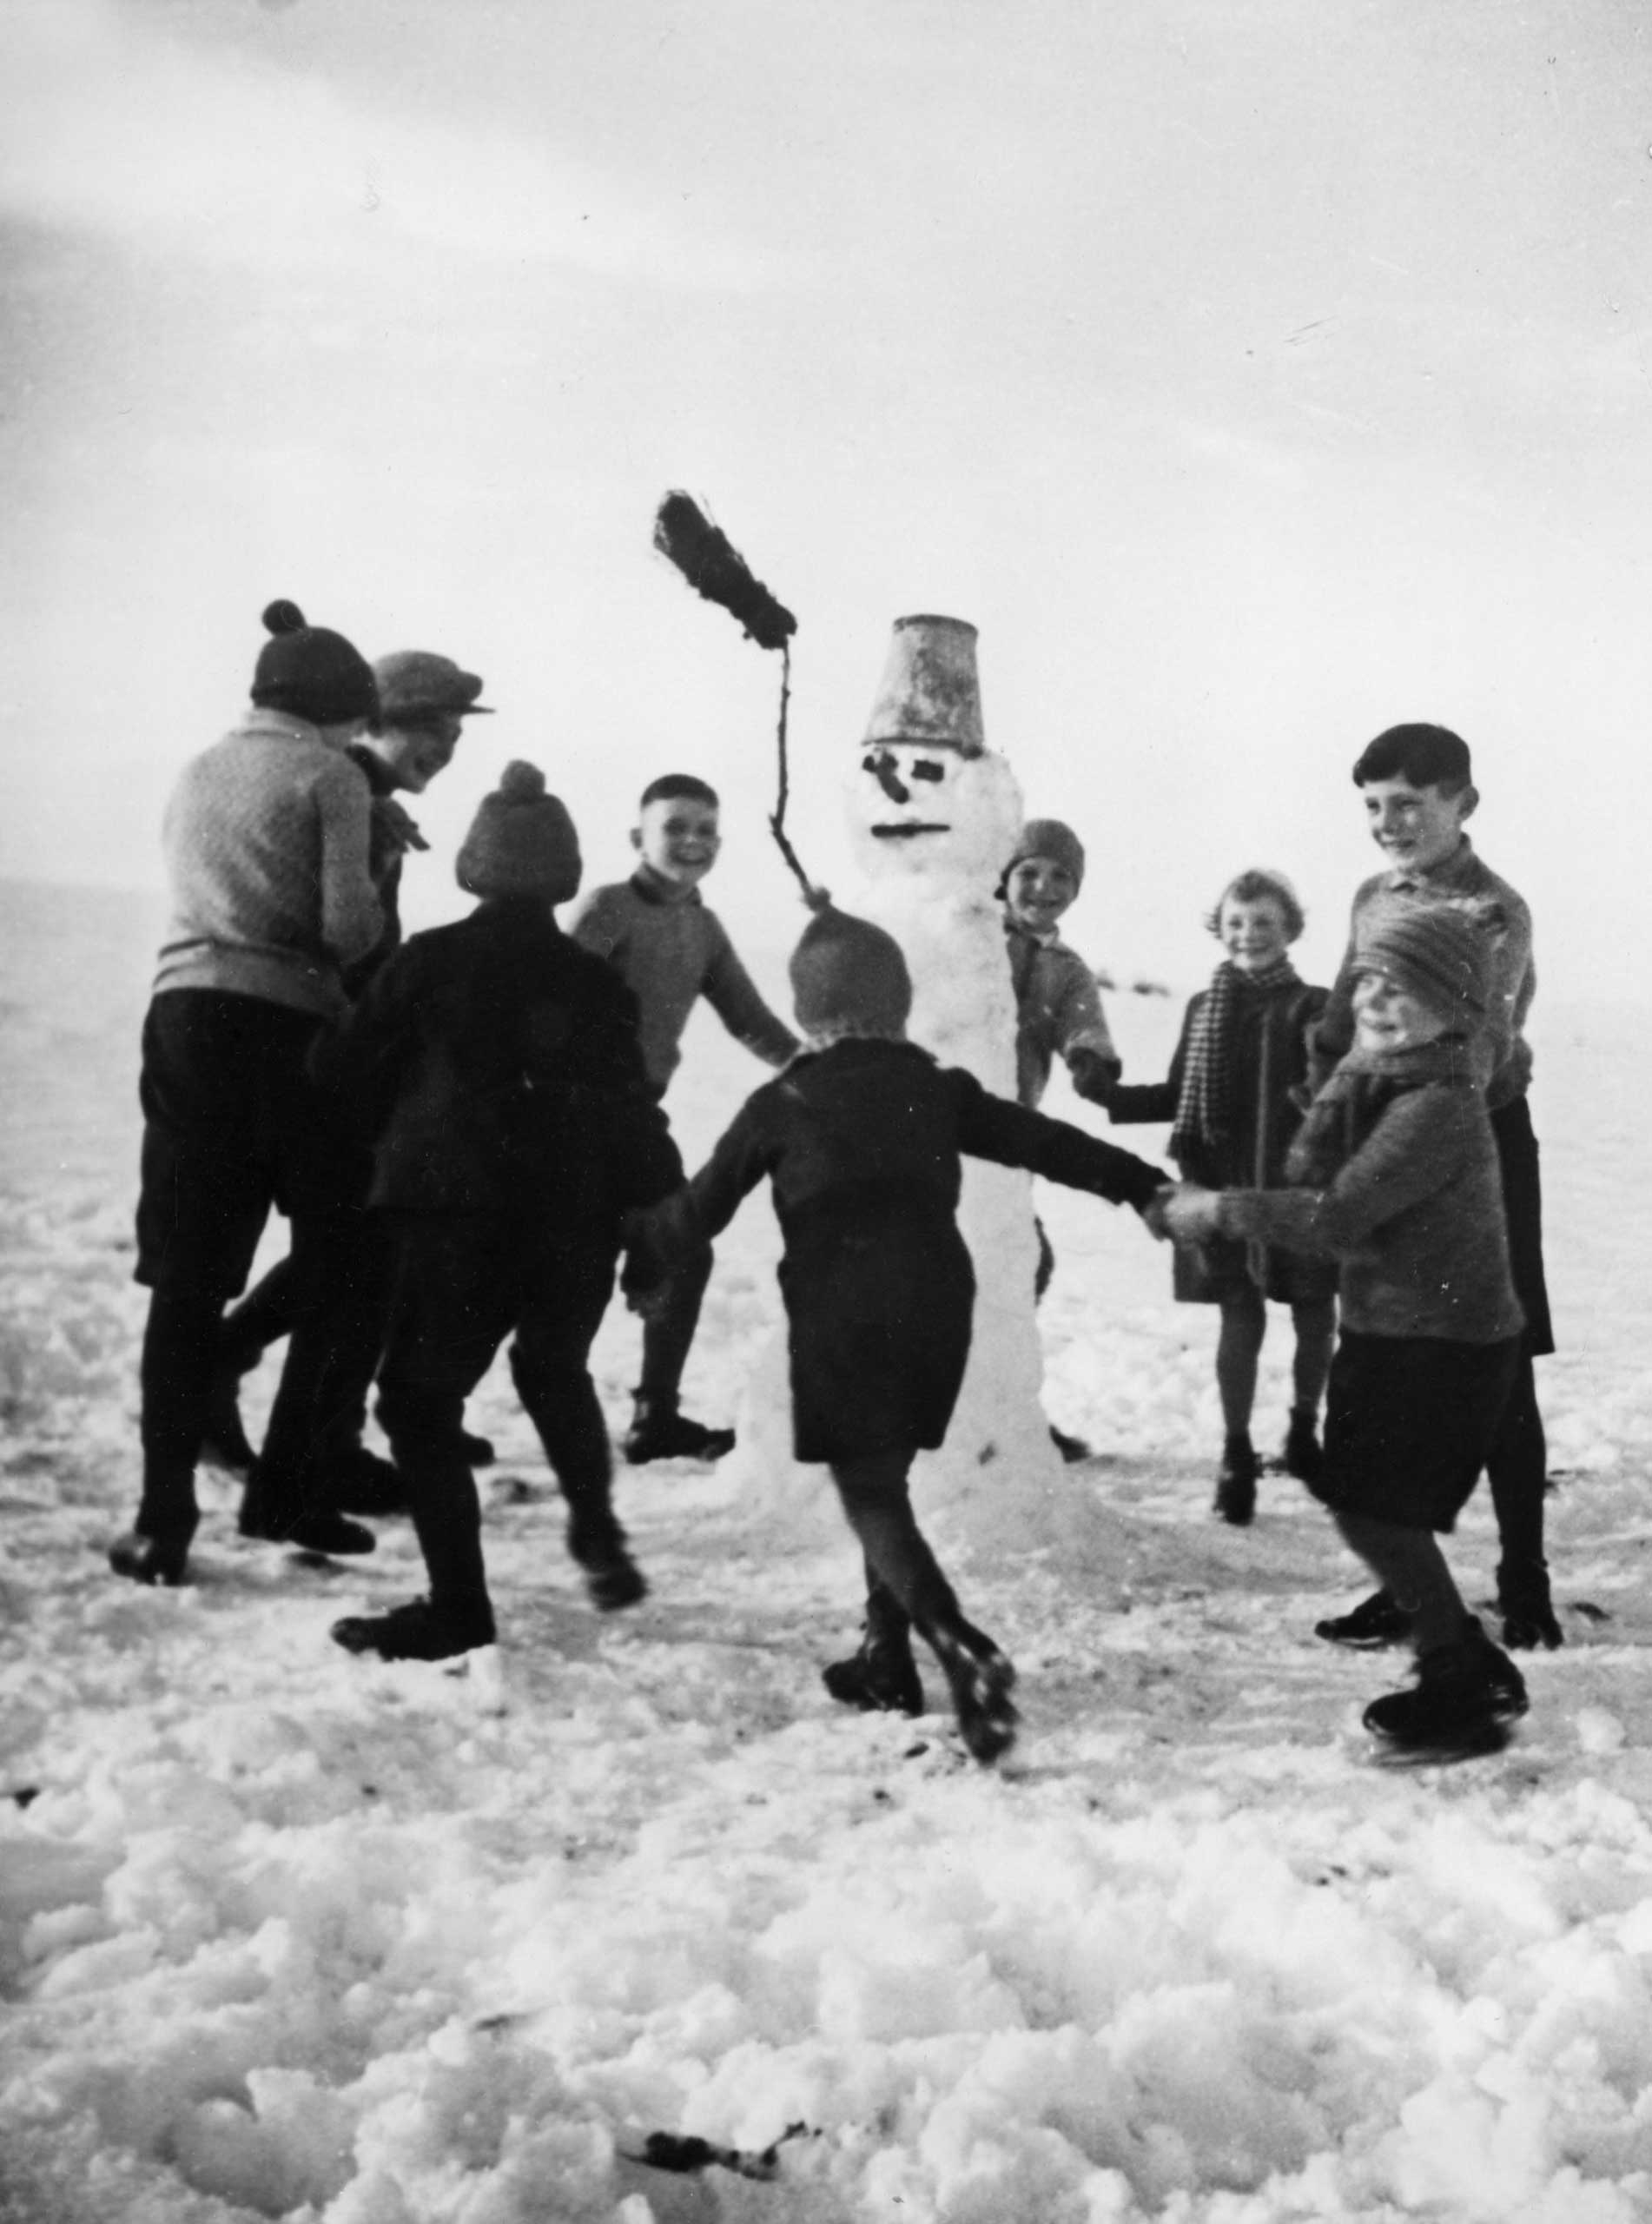 Children dance around a snowman on Dec. 10, 1937, in Austria